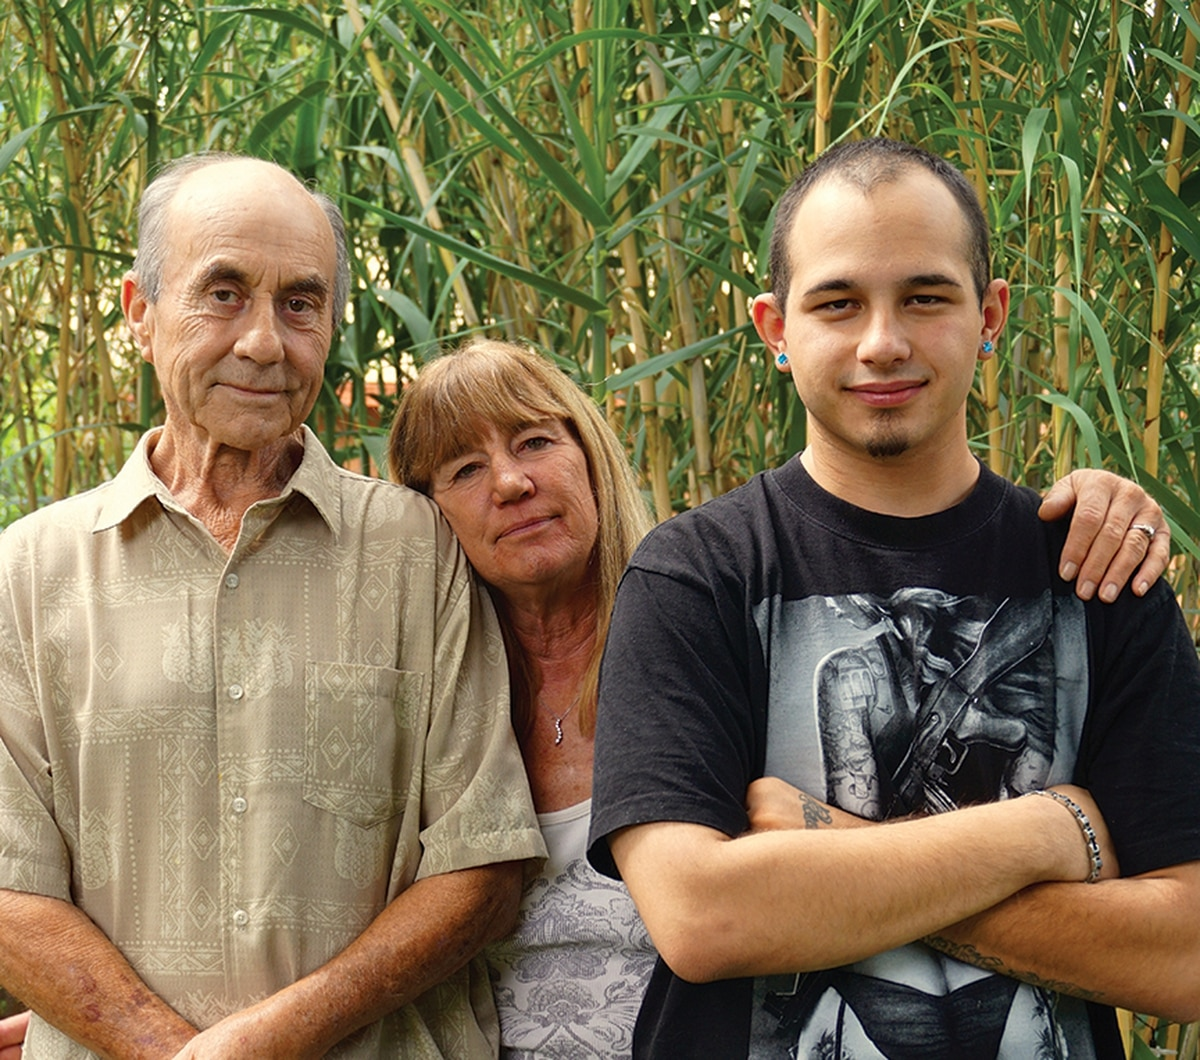 """Jennifer Padilla's family doesn't shy away from her spotty past, but they say the ATF crossed a line. From left: Dan Sullivan, her father; Denise """"Scooter"""" Sullivan, her mother; and Andrew Padilla, her eldest son."""